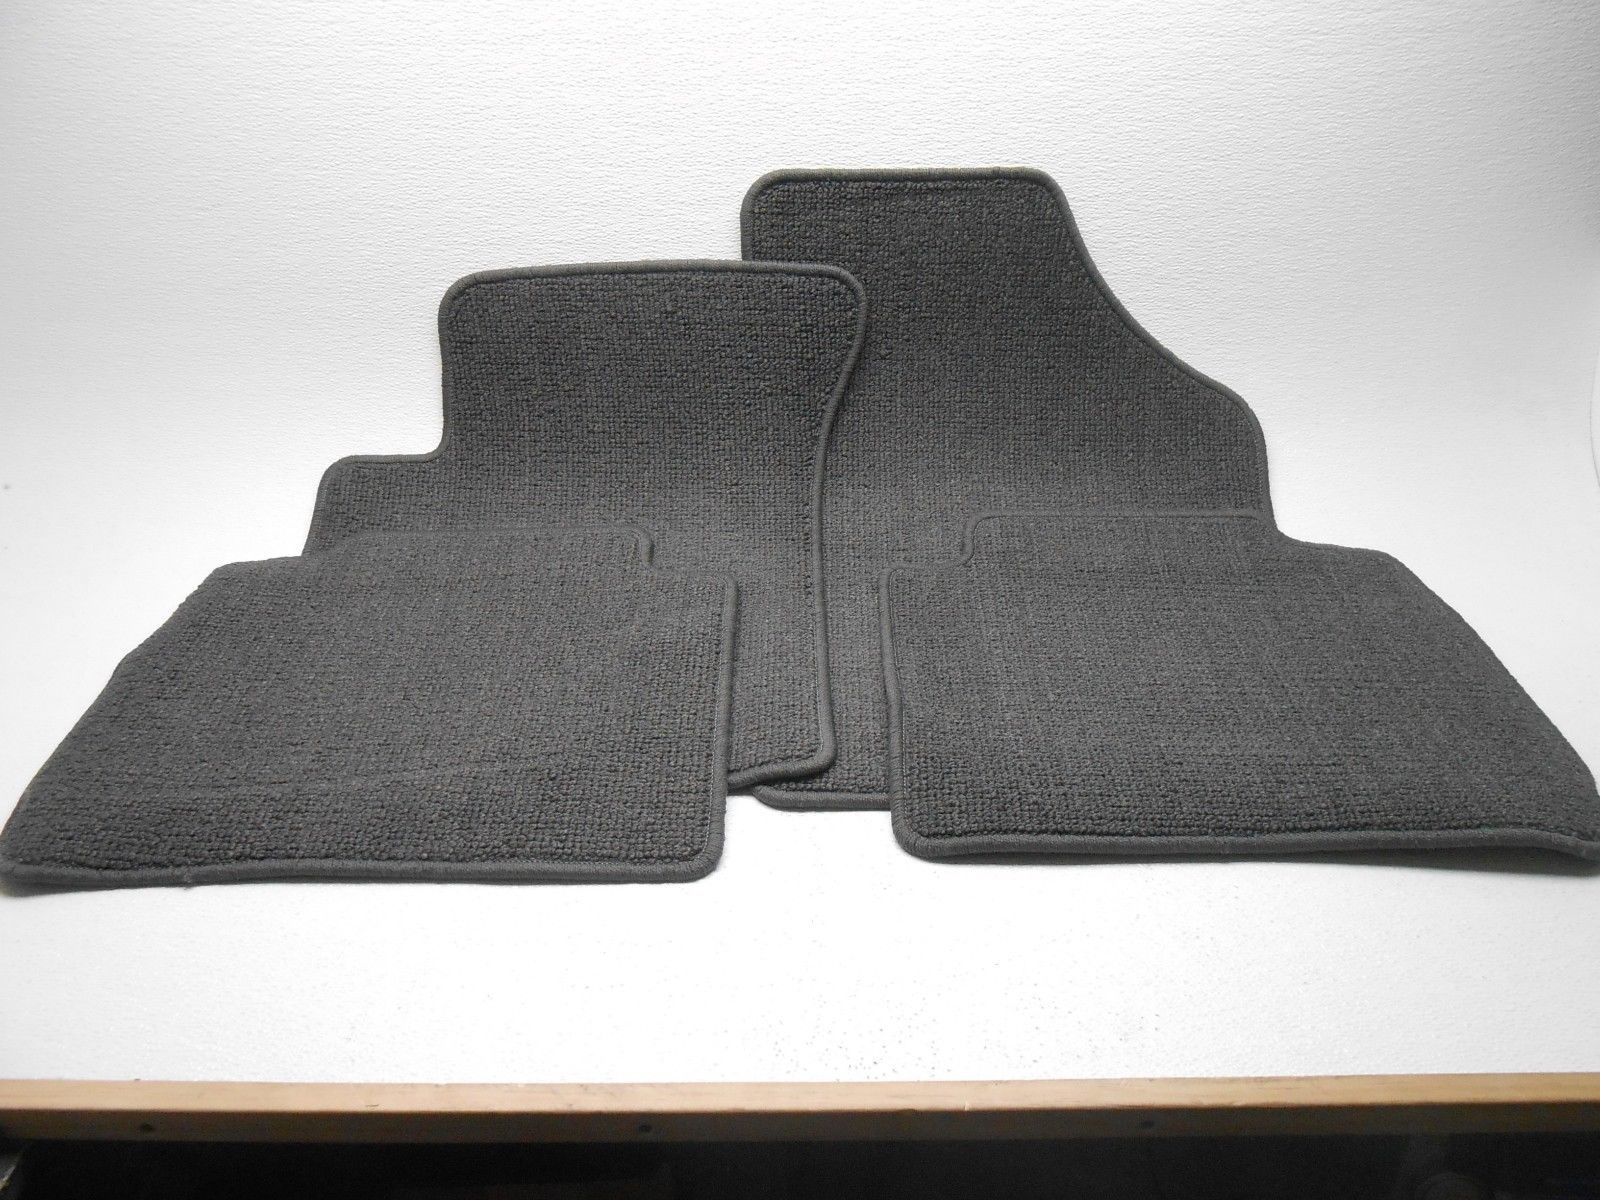 Floor mats kia - New Oem Kia Spectra 5 Floor Mats 2005 2009 Grey